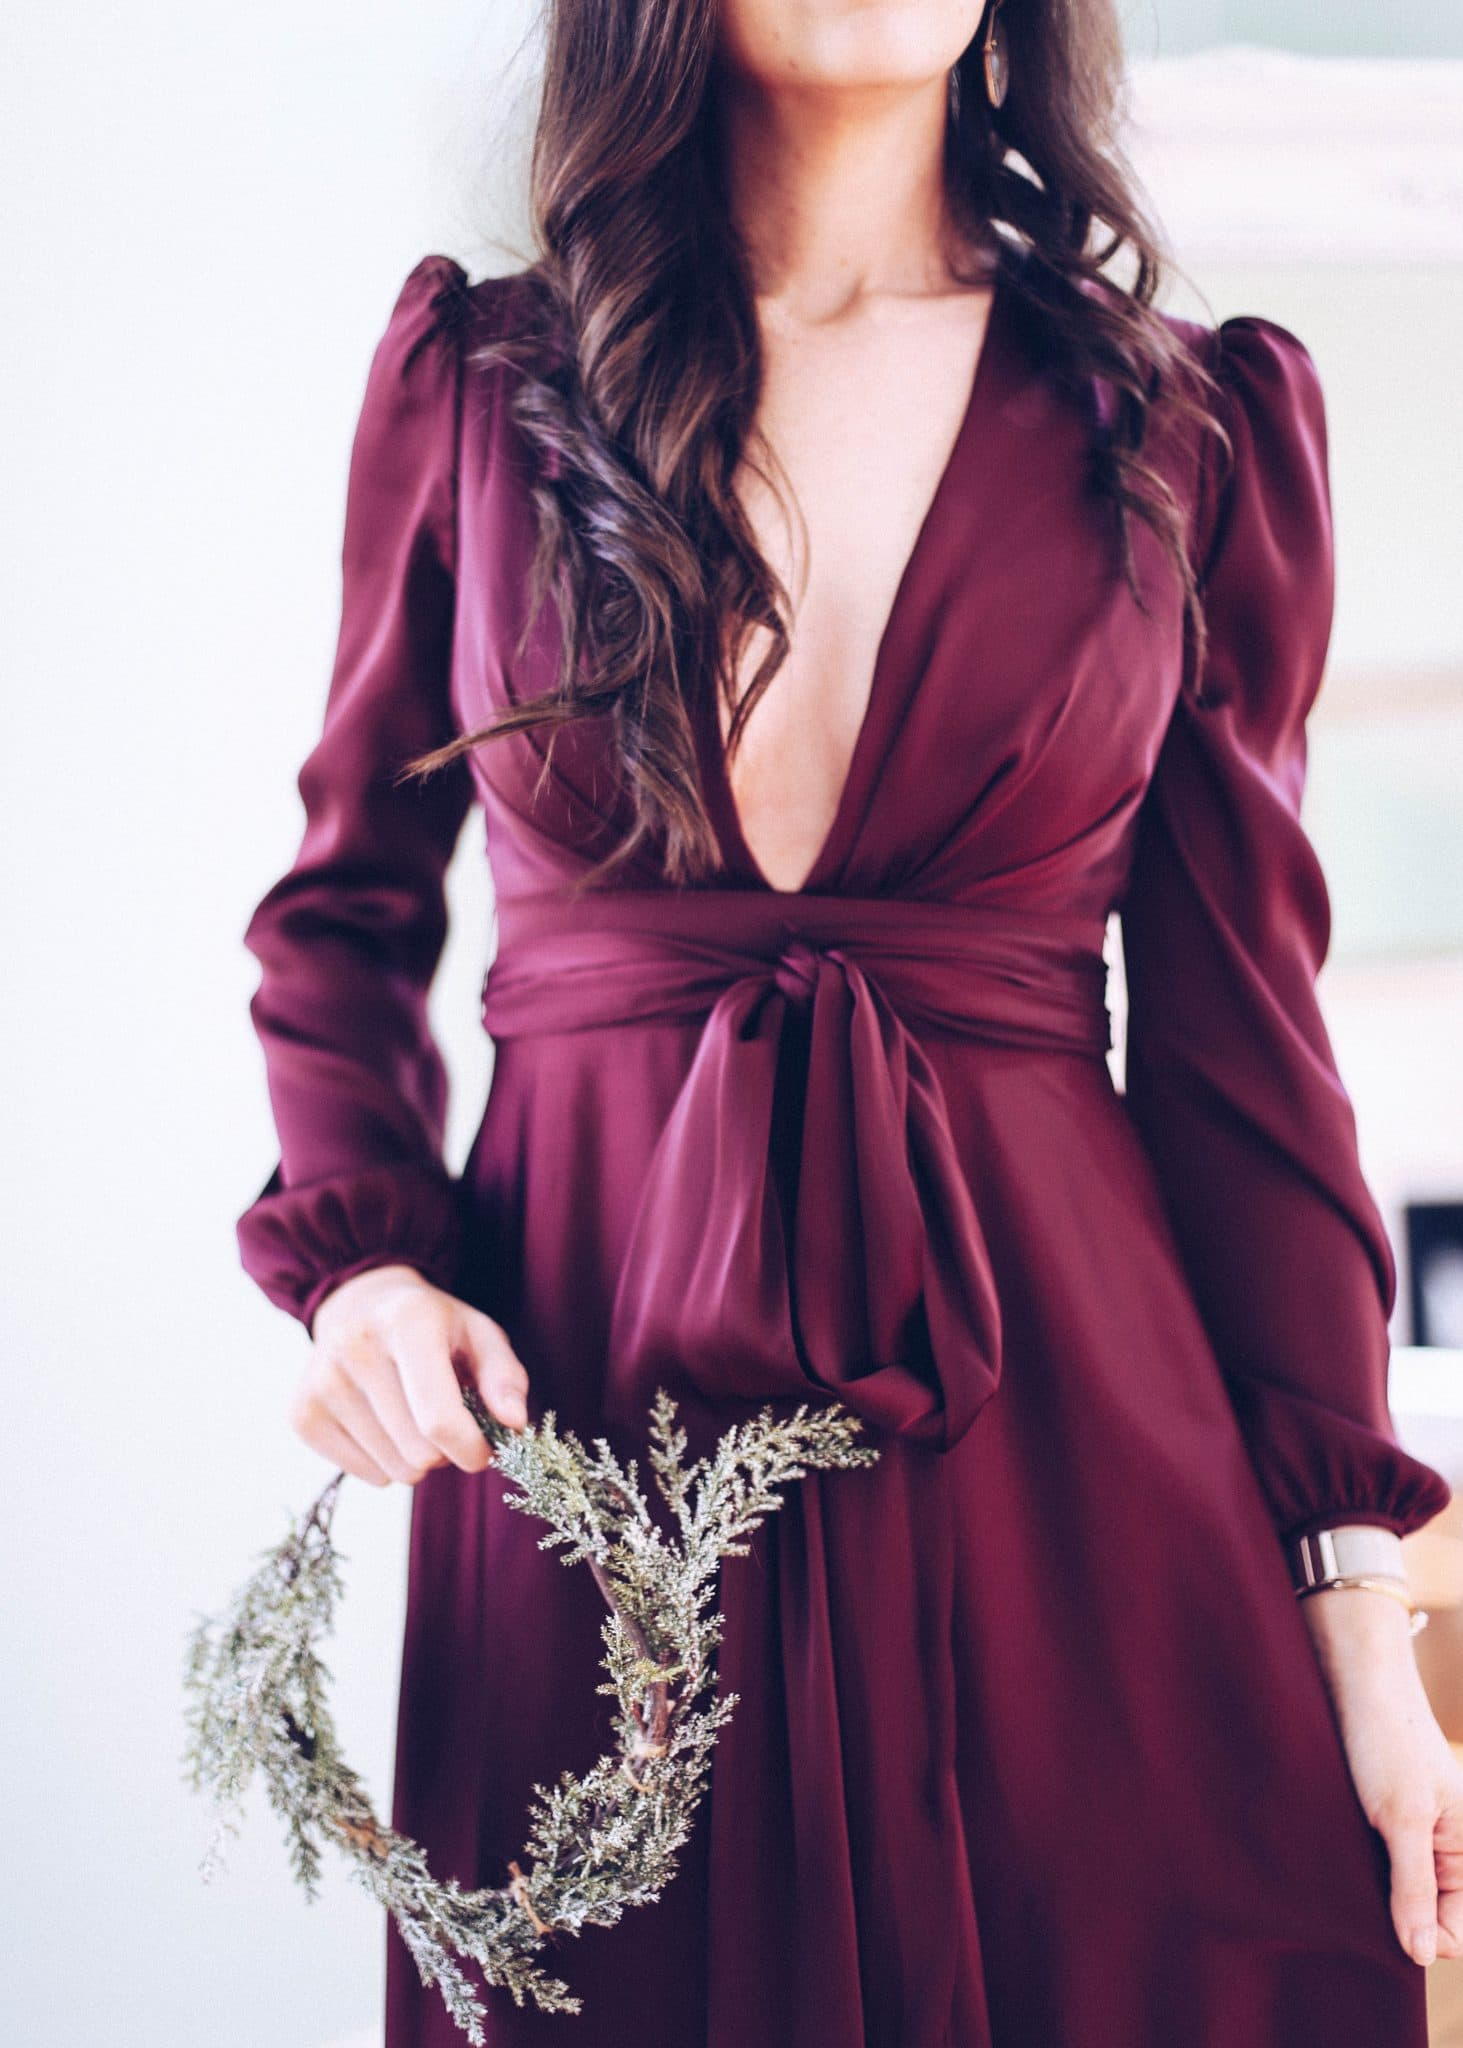 rent the runway oxblood gown, pretty in the pines blog, merrimon wynne house, raleigh nc wedding venue, holiday giveaways, nc blogger, north carolina fashion lifestyle blog, raleigh blogger, christmas giveaways,